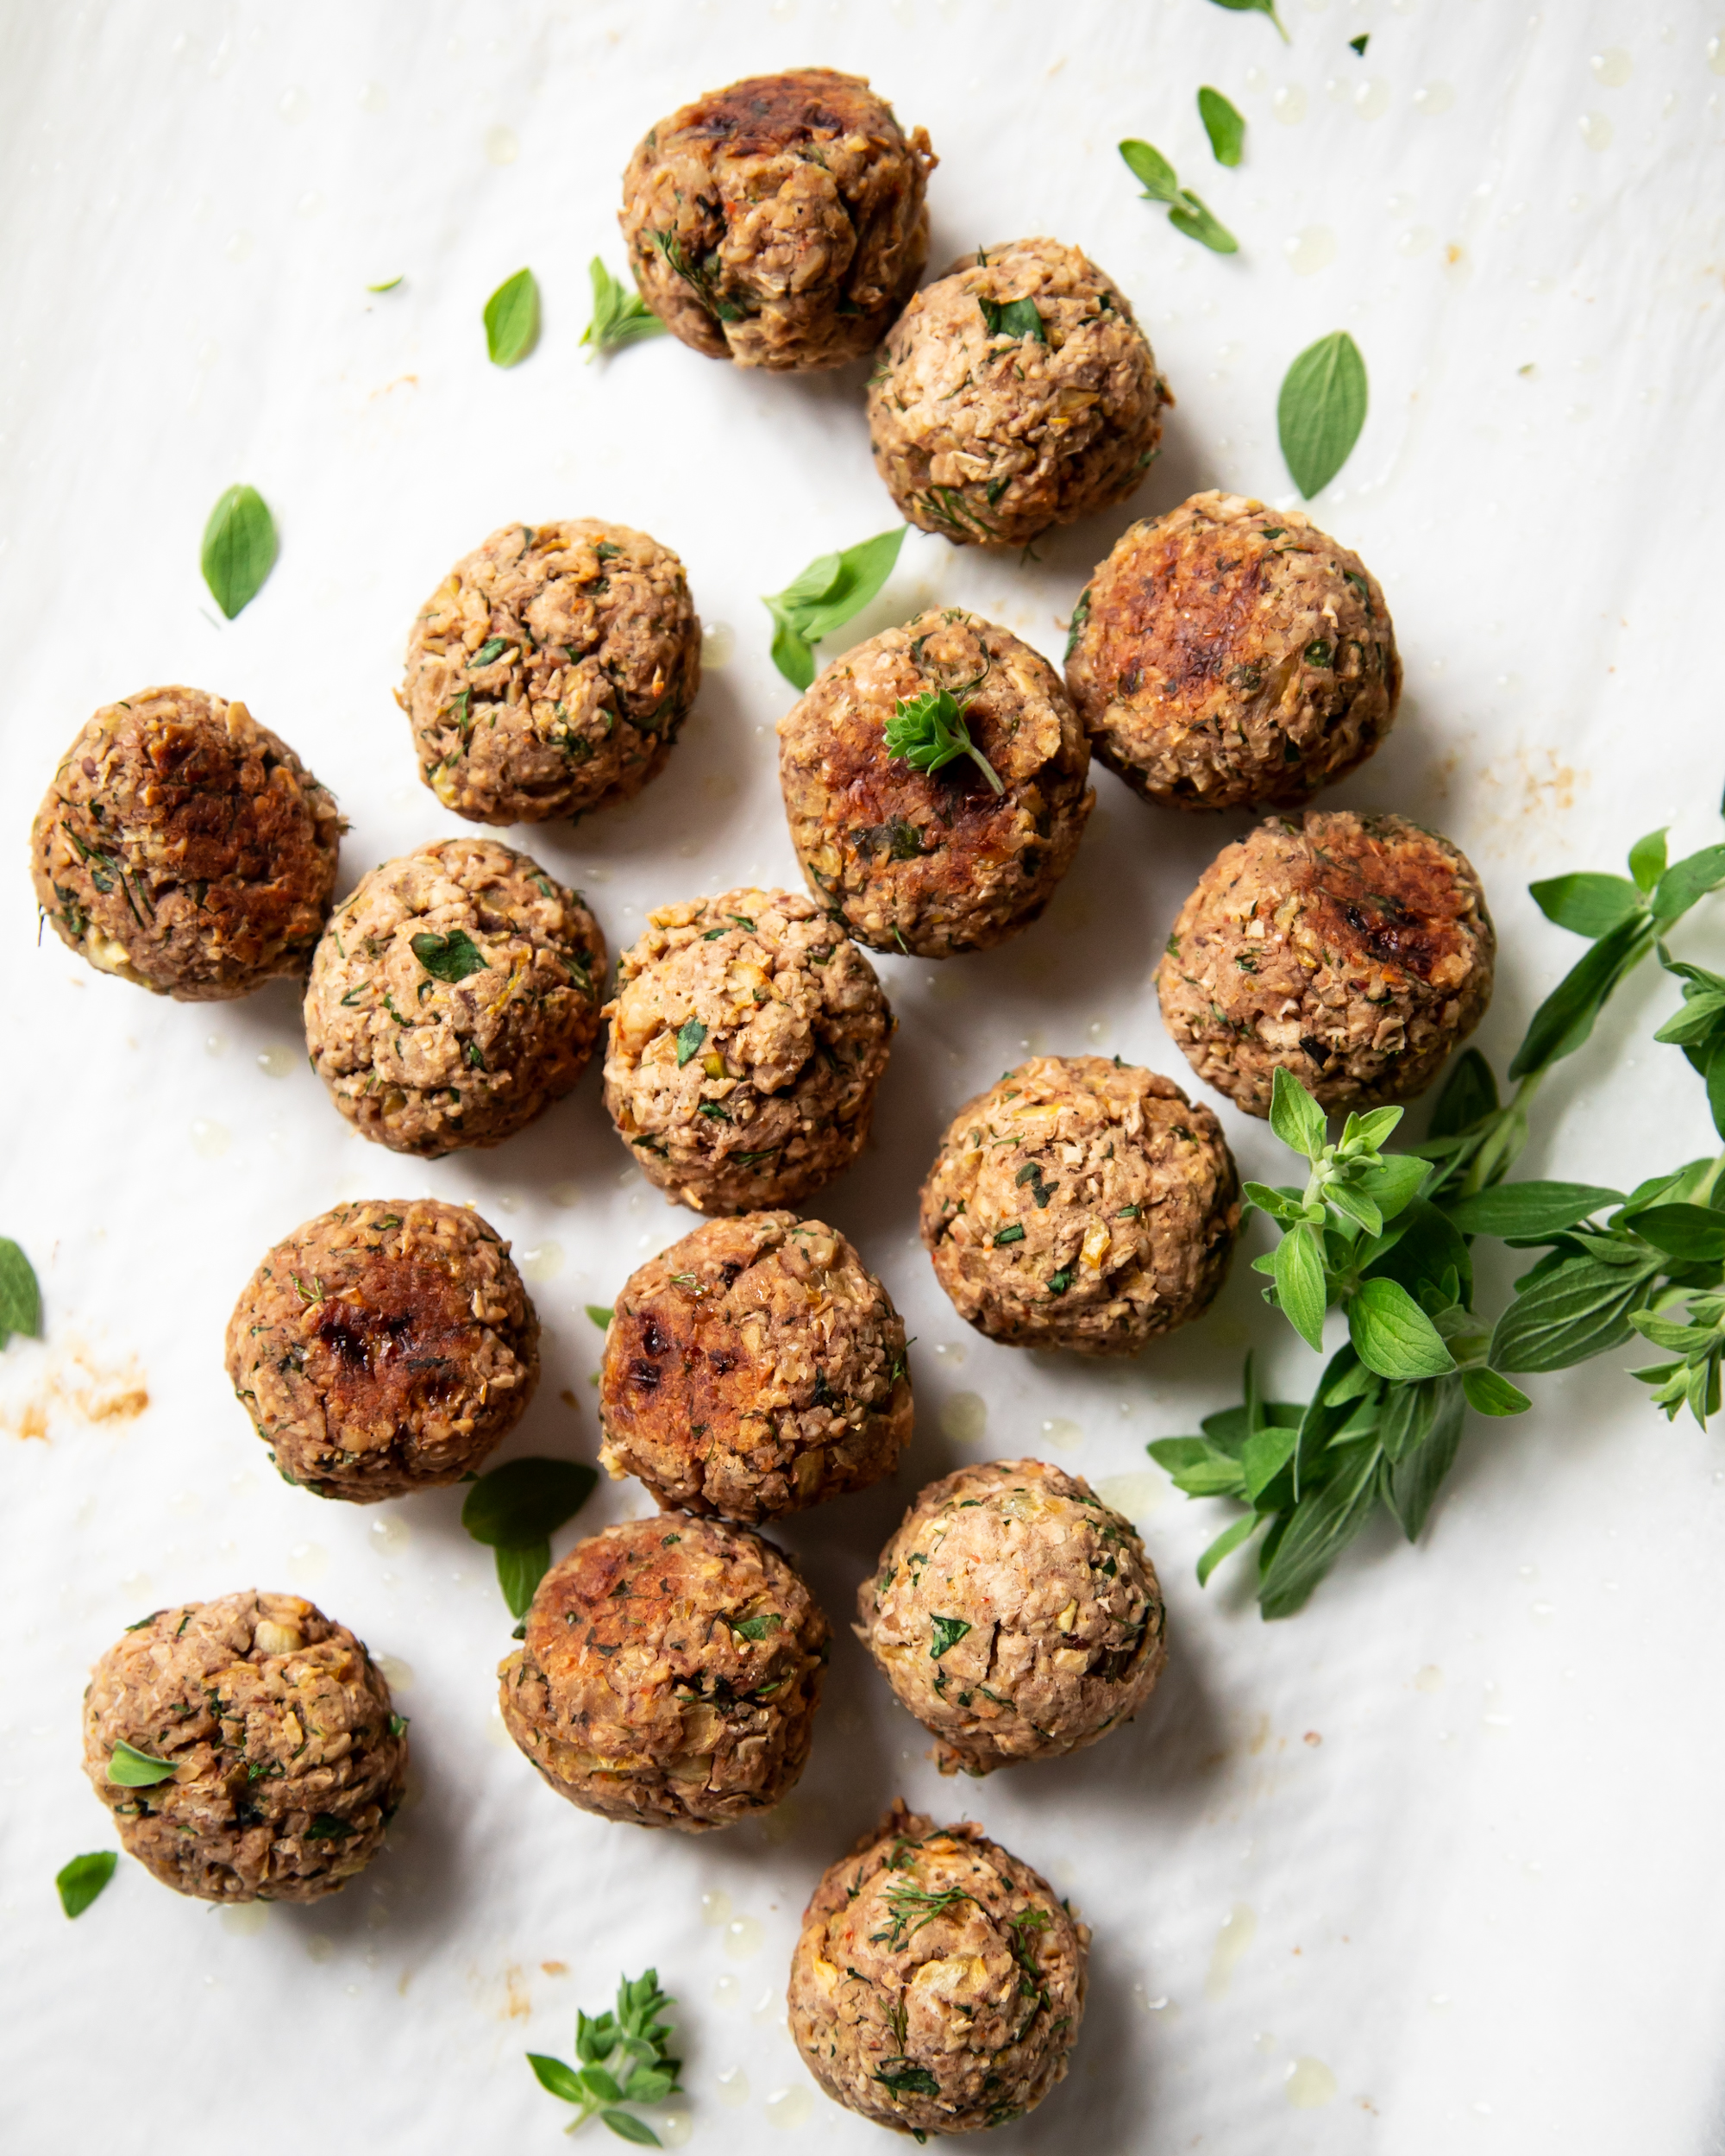 An overhead shot of cooked vegan meatballs, garnished with fresh oregano leaves.